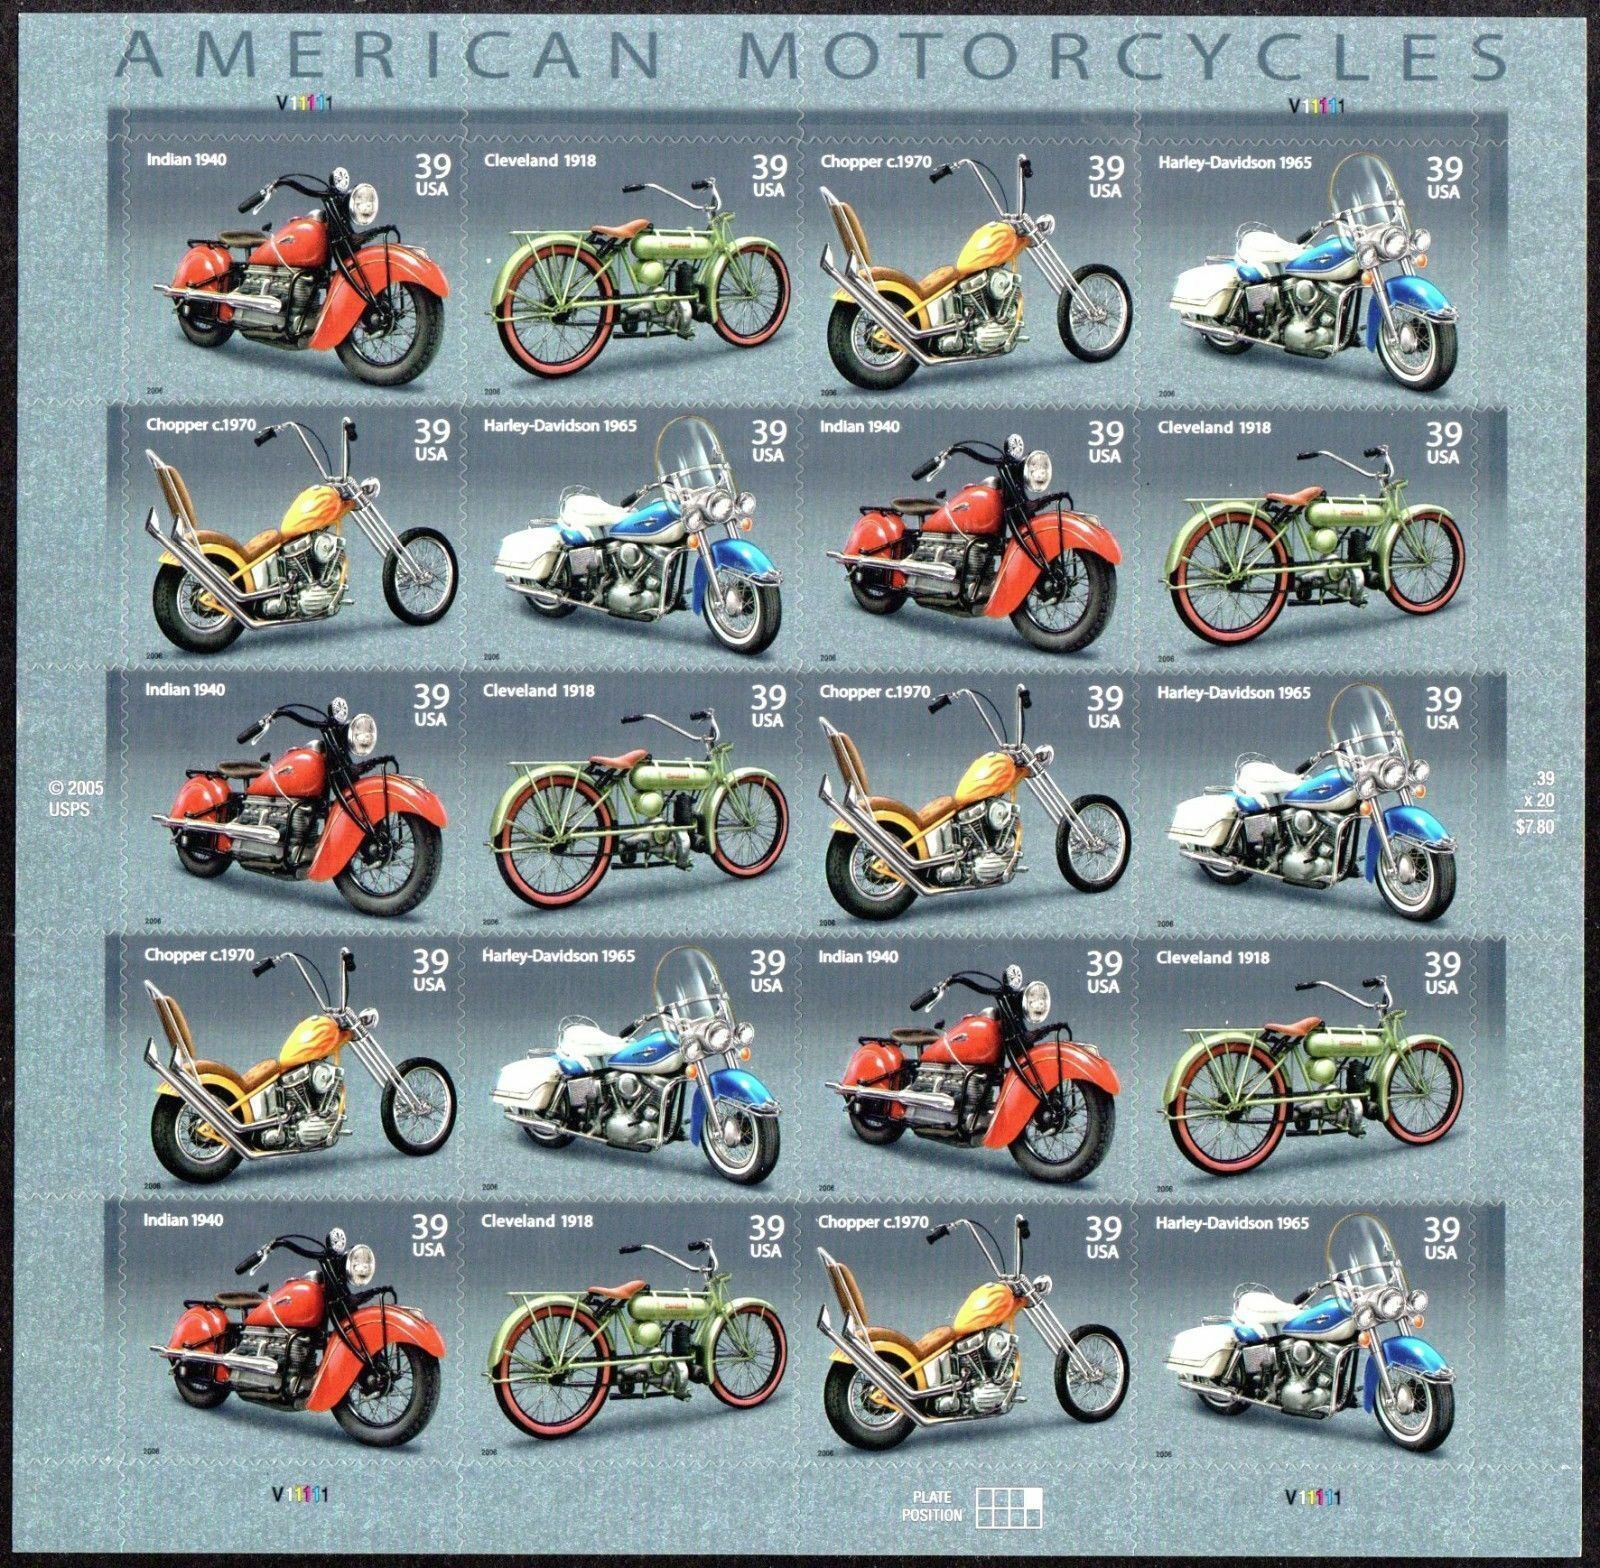 2006 39c American Motorcycles, Indian, Sheet of 20 Scot